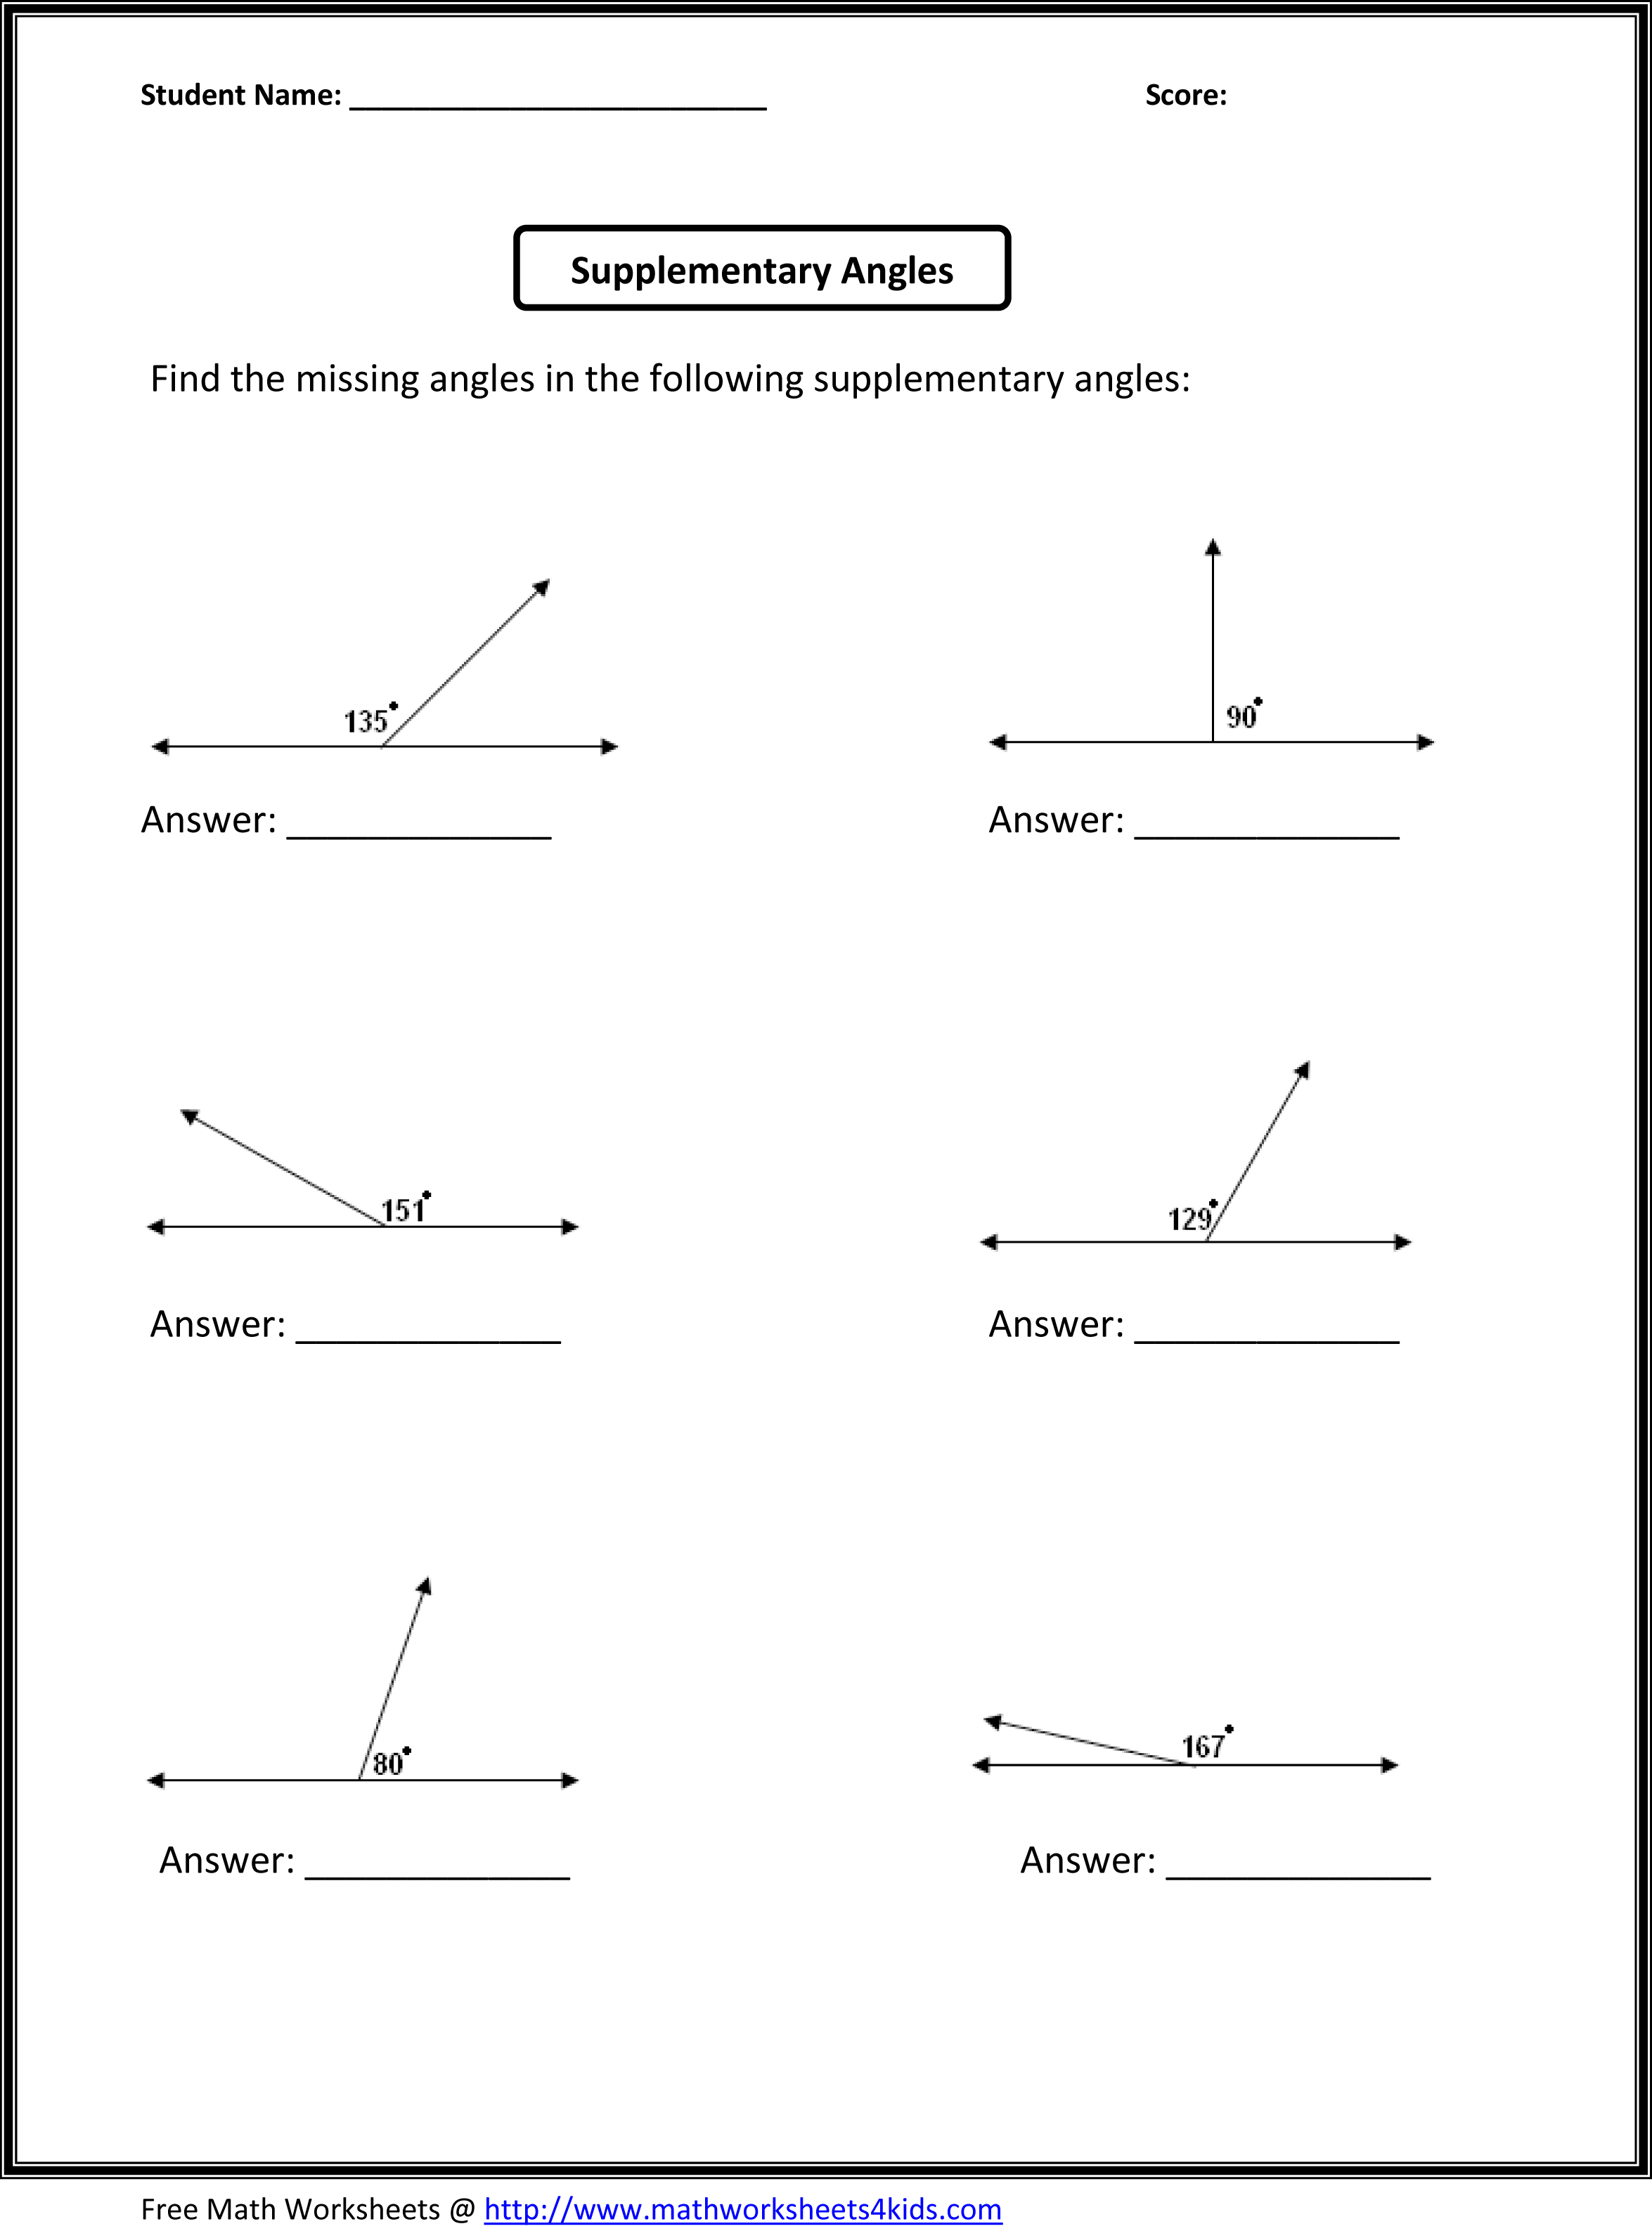 Printables Free Printable Math Worksheets 6th Grade 6th grade math worksheets online christmas for free printable third value absolute based on basic math